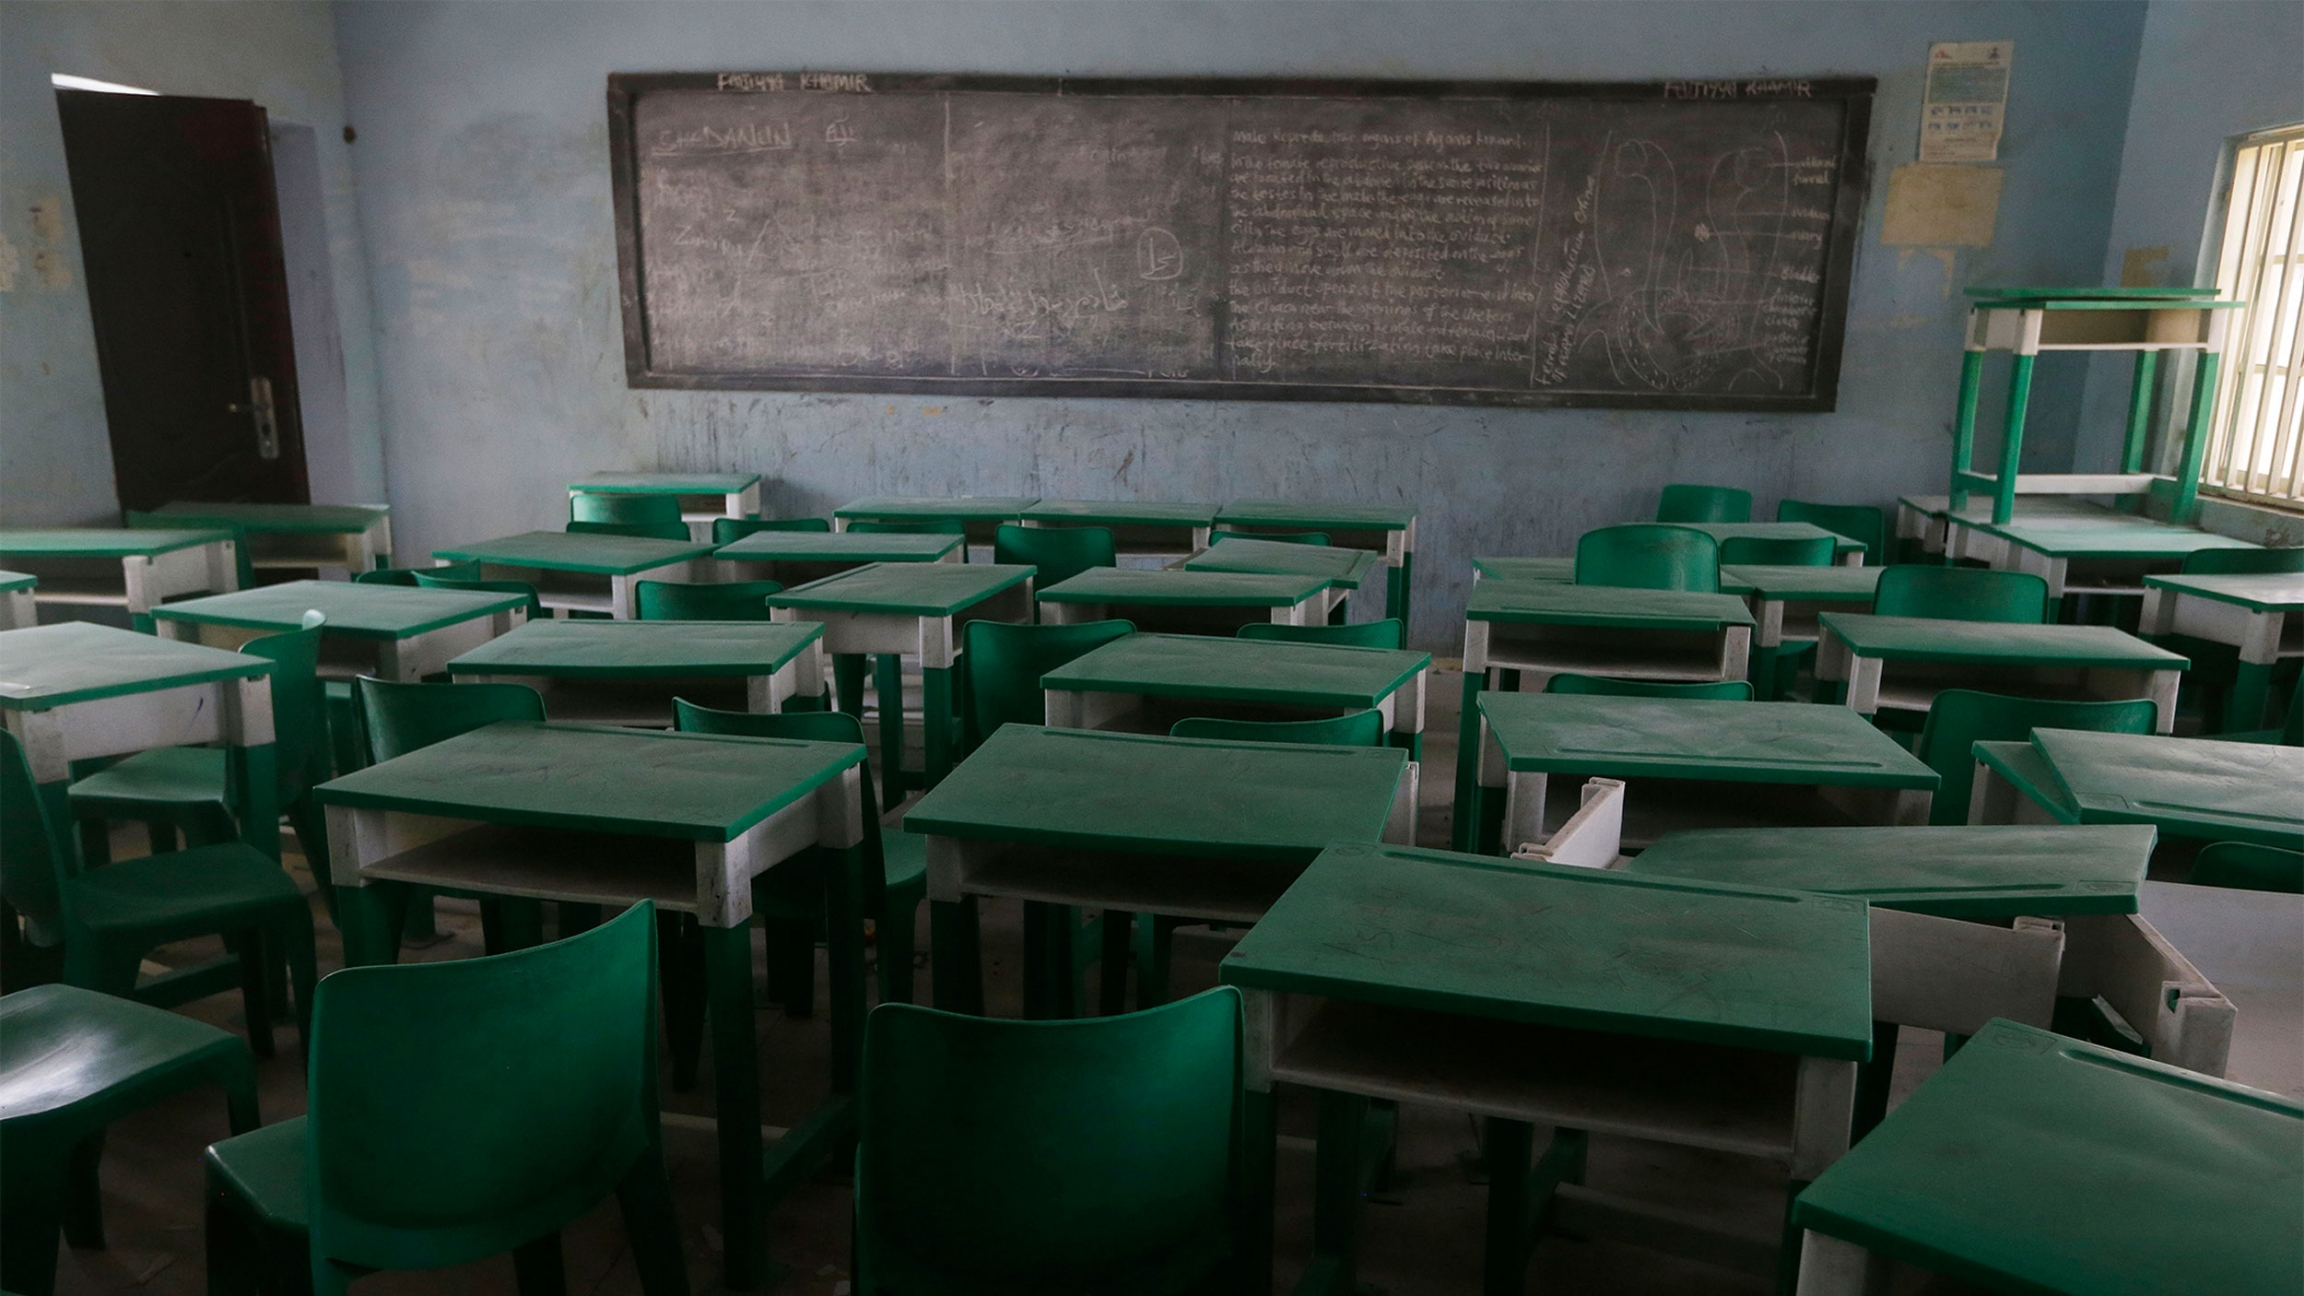 Empty green desks and chairs in a classroom with a chalkboard at the front